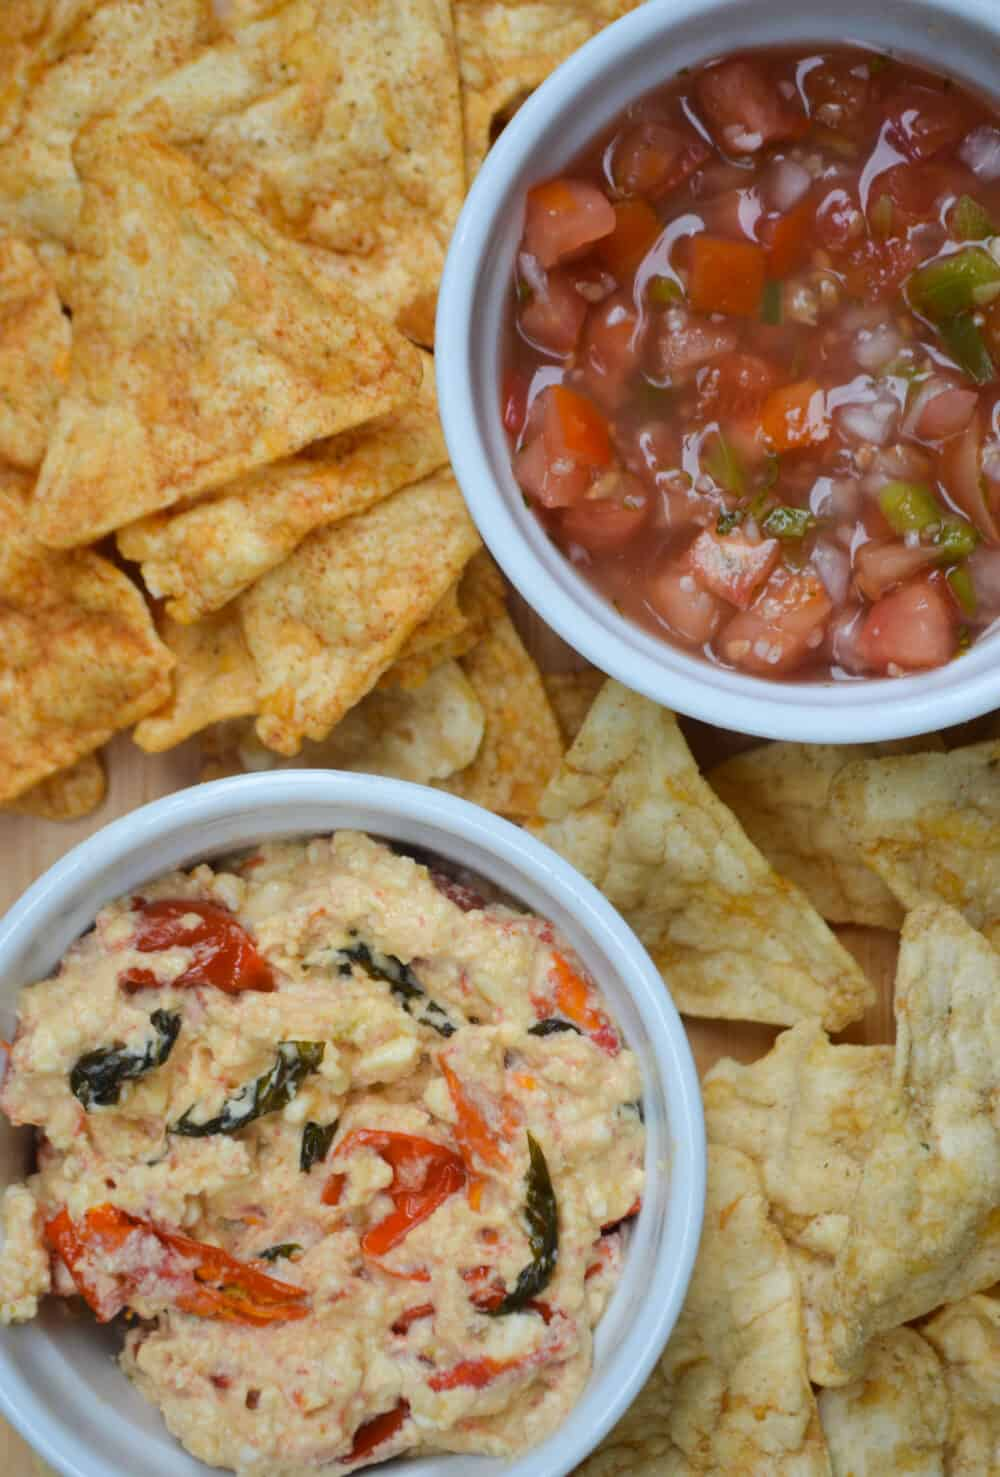 Warm Feta Dip with Chickpea Chips